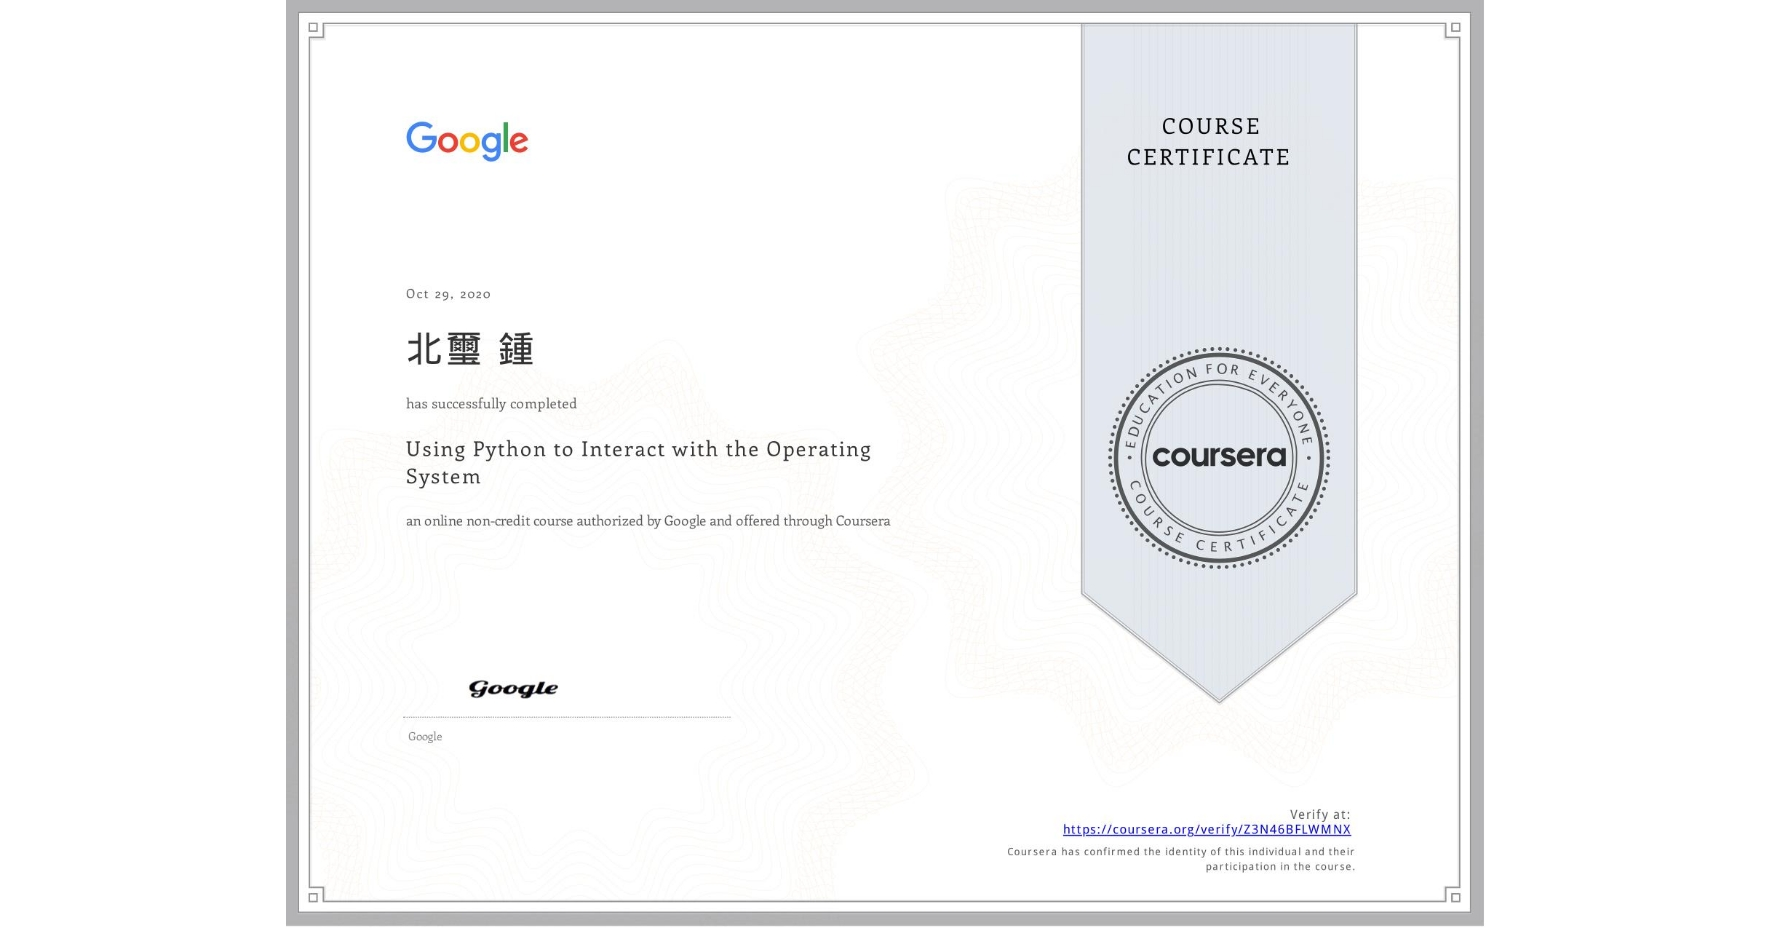 View certificate for 北璽 鍾, Using Python to Interact with the Operating System, an online non-credit course authorized by Google and offered through Coursera